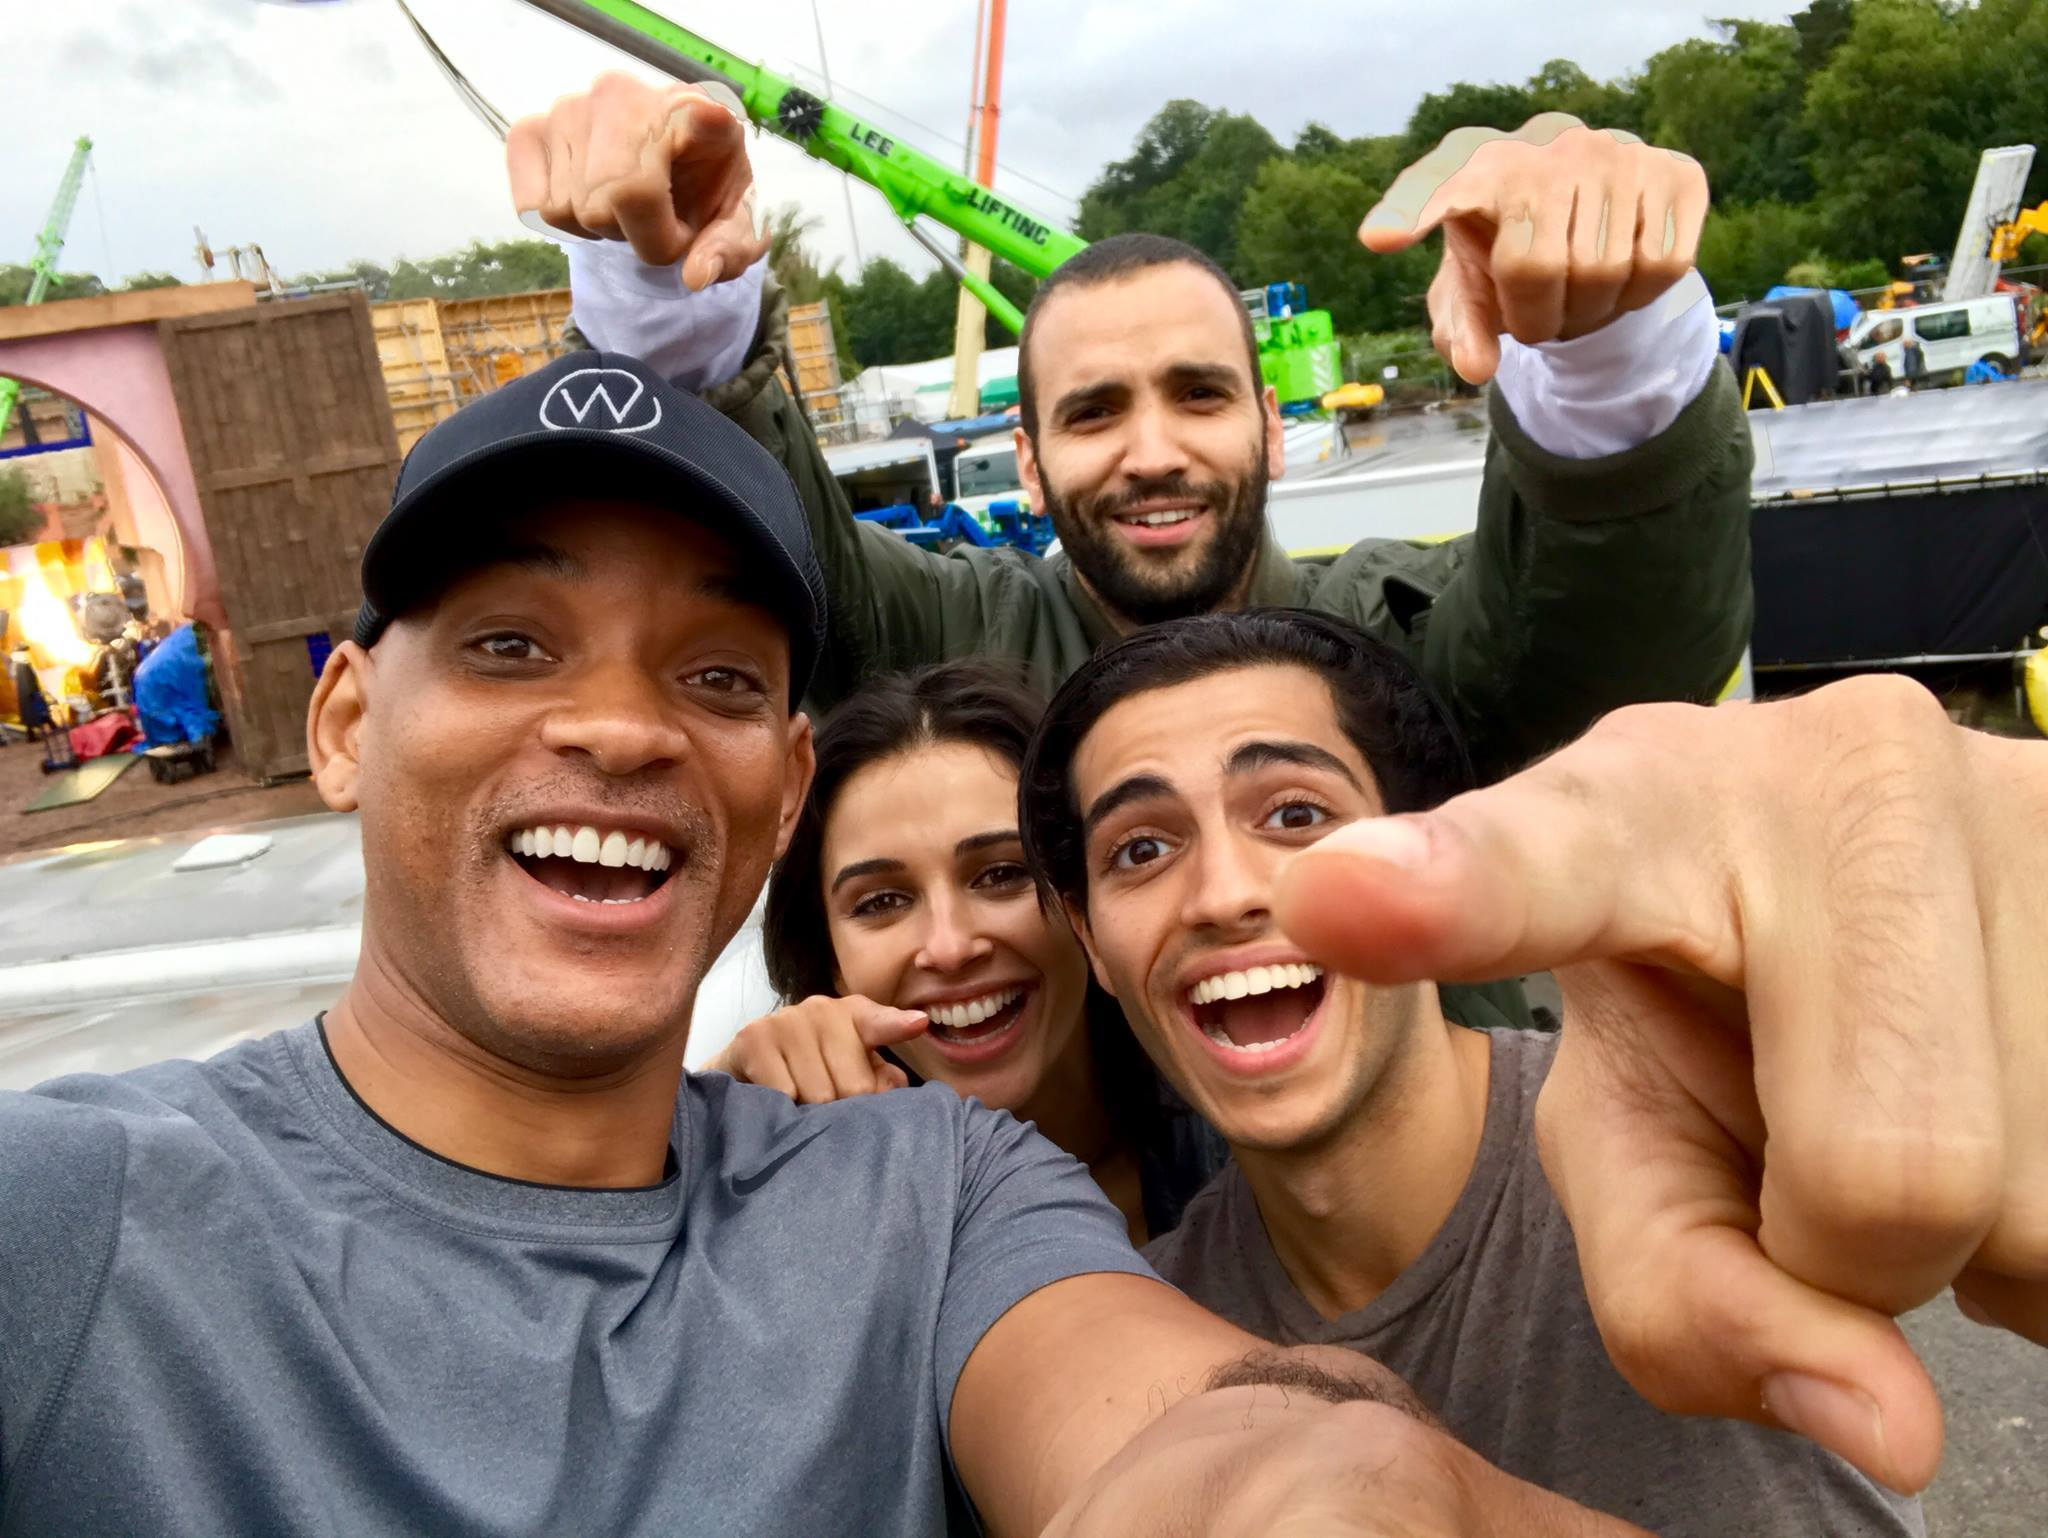 Disney's Live-Action Aladdin Cast